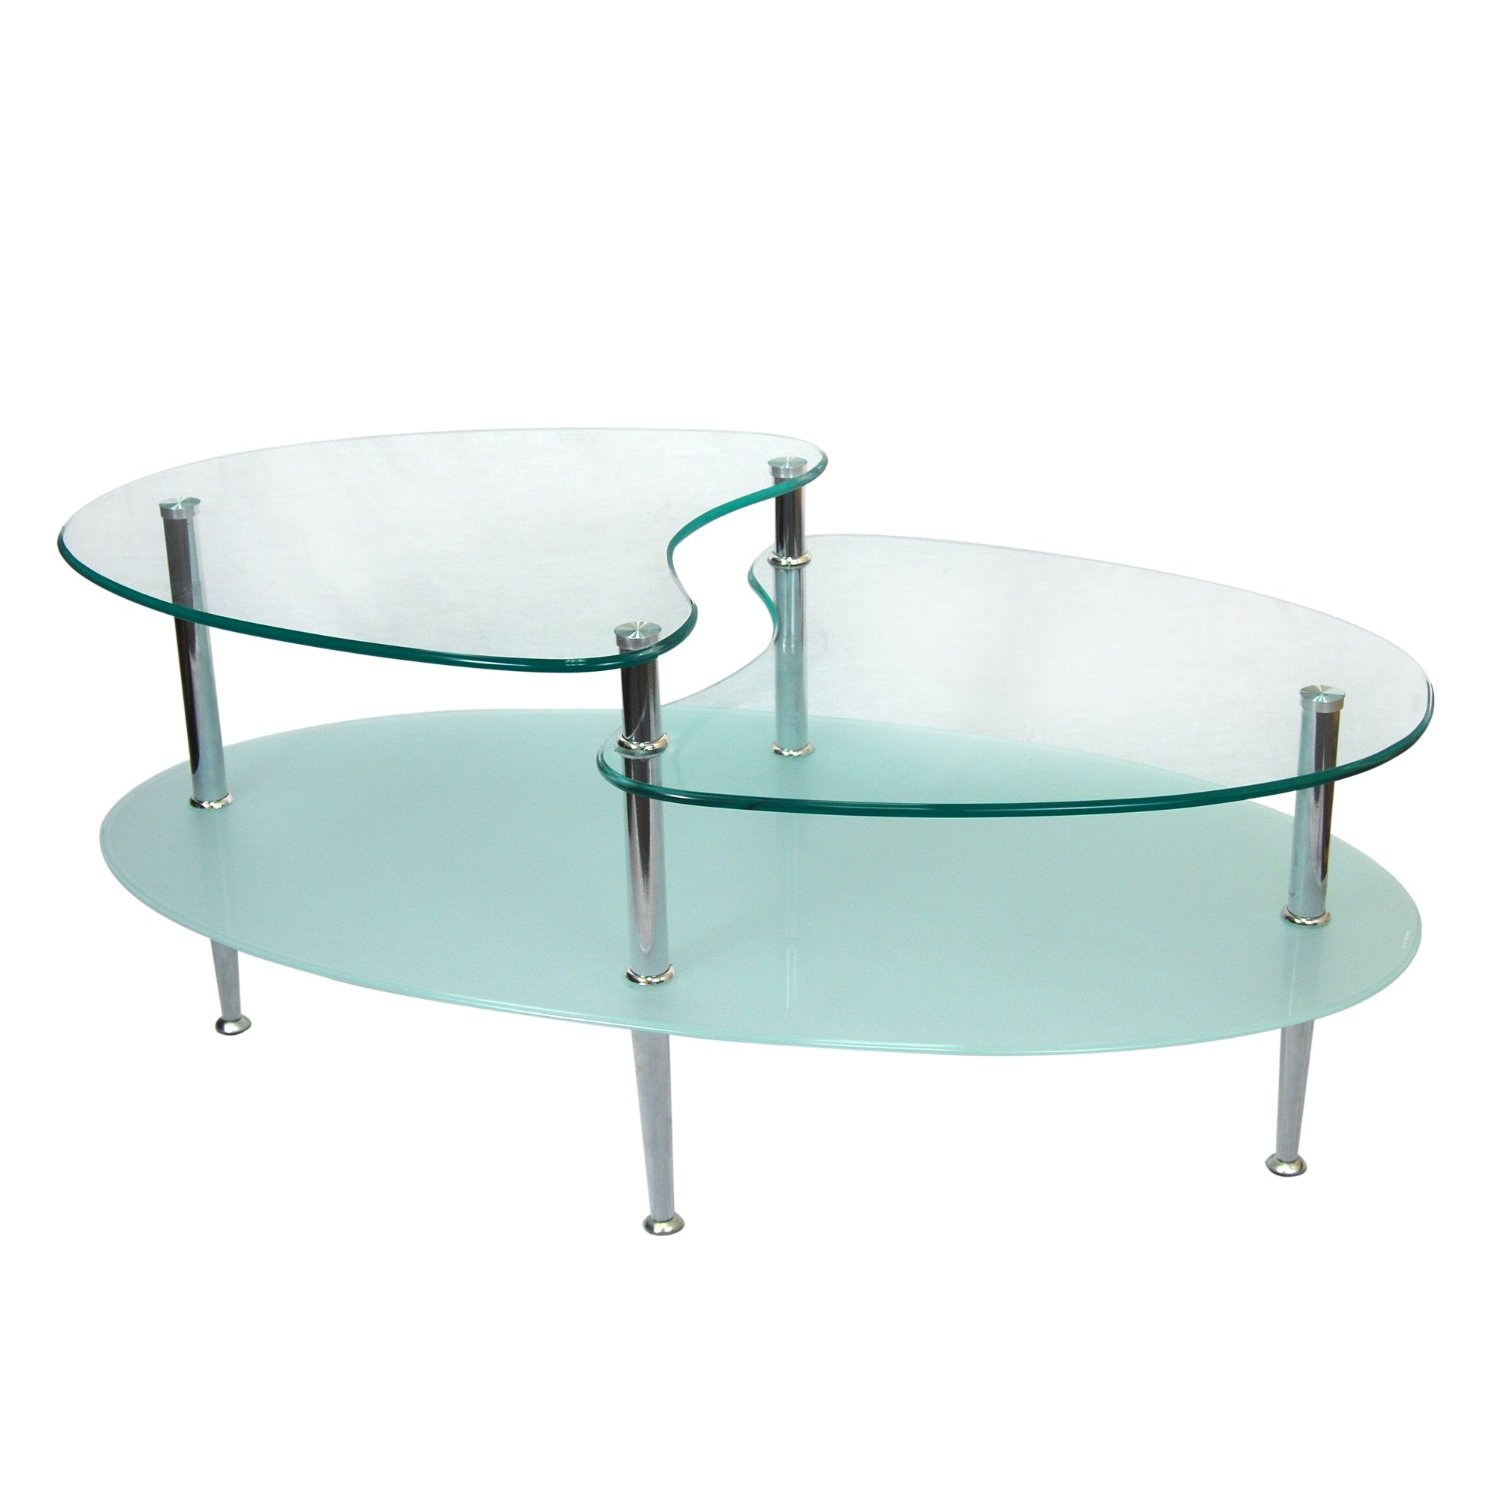 Glass coffee table interior design center inspiration Used glass coffee table